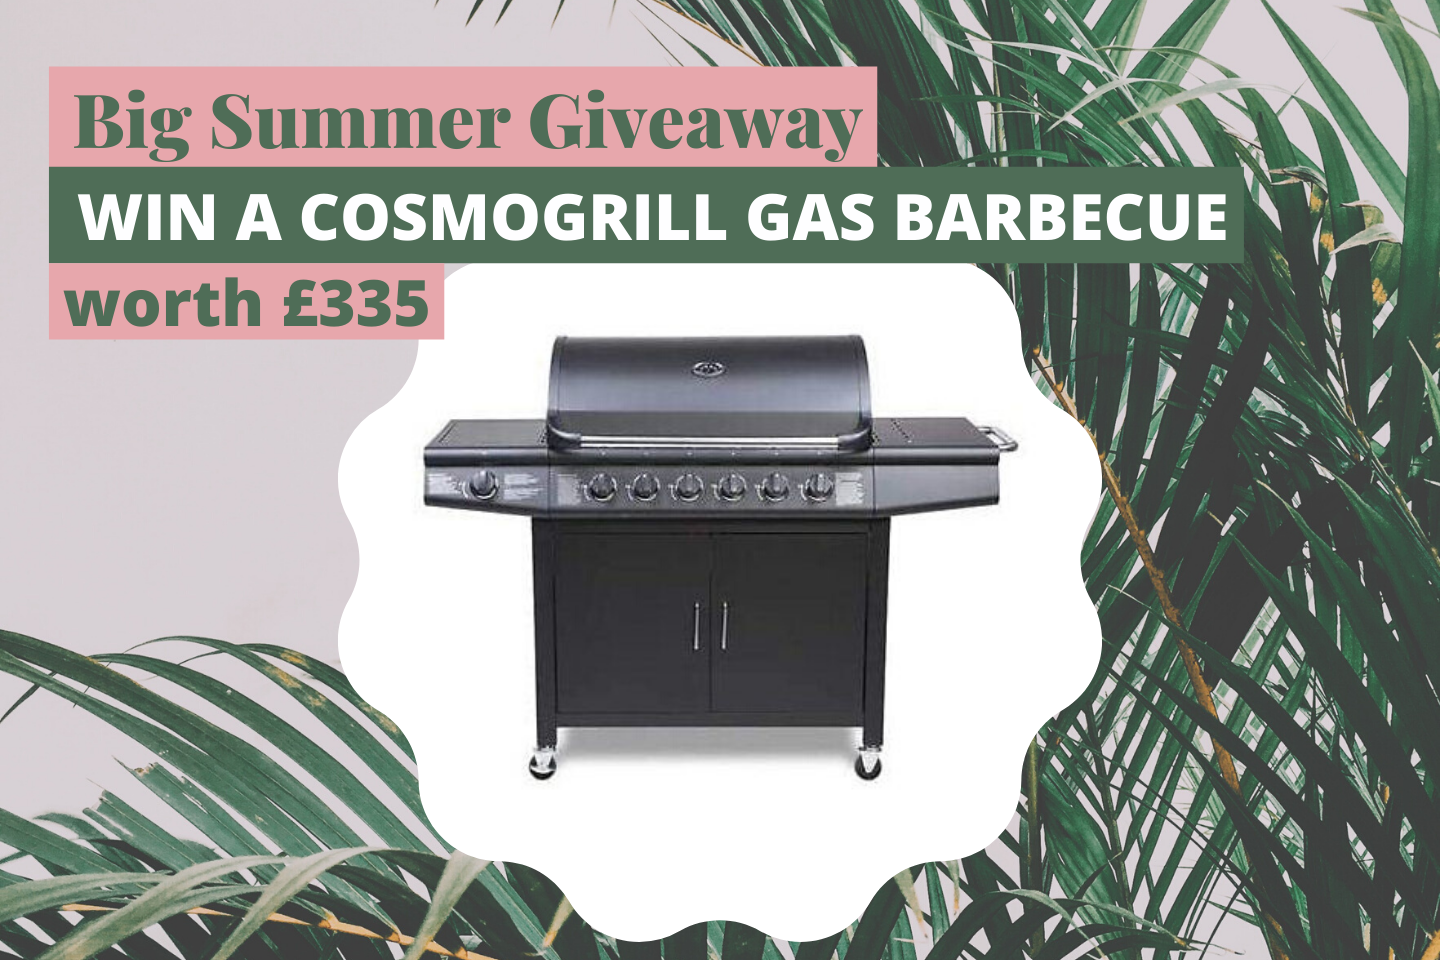 Win a CosmoGrill 6+1 Gas Barbecue worth £335!